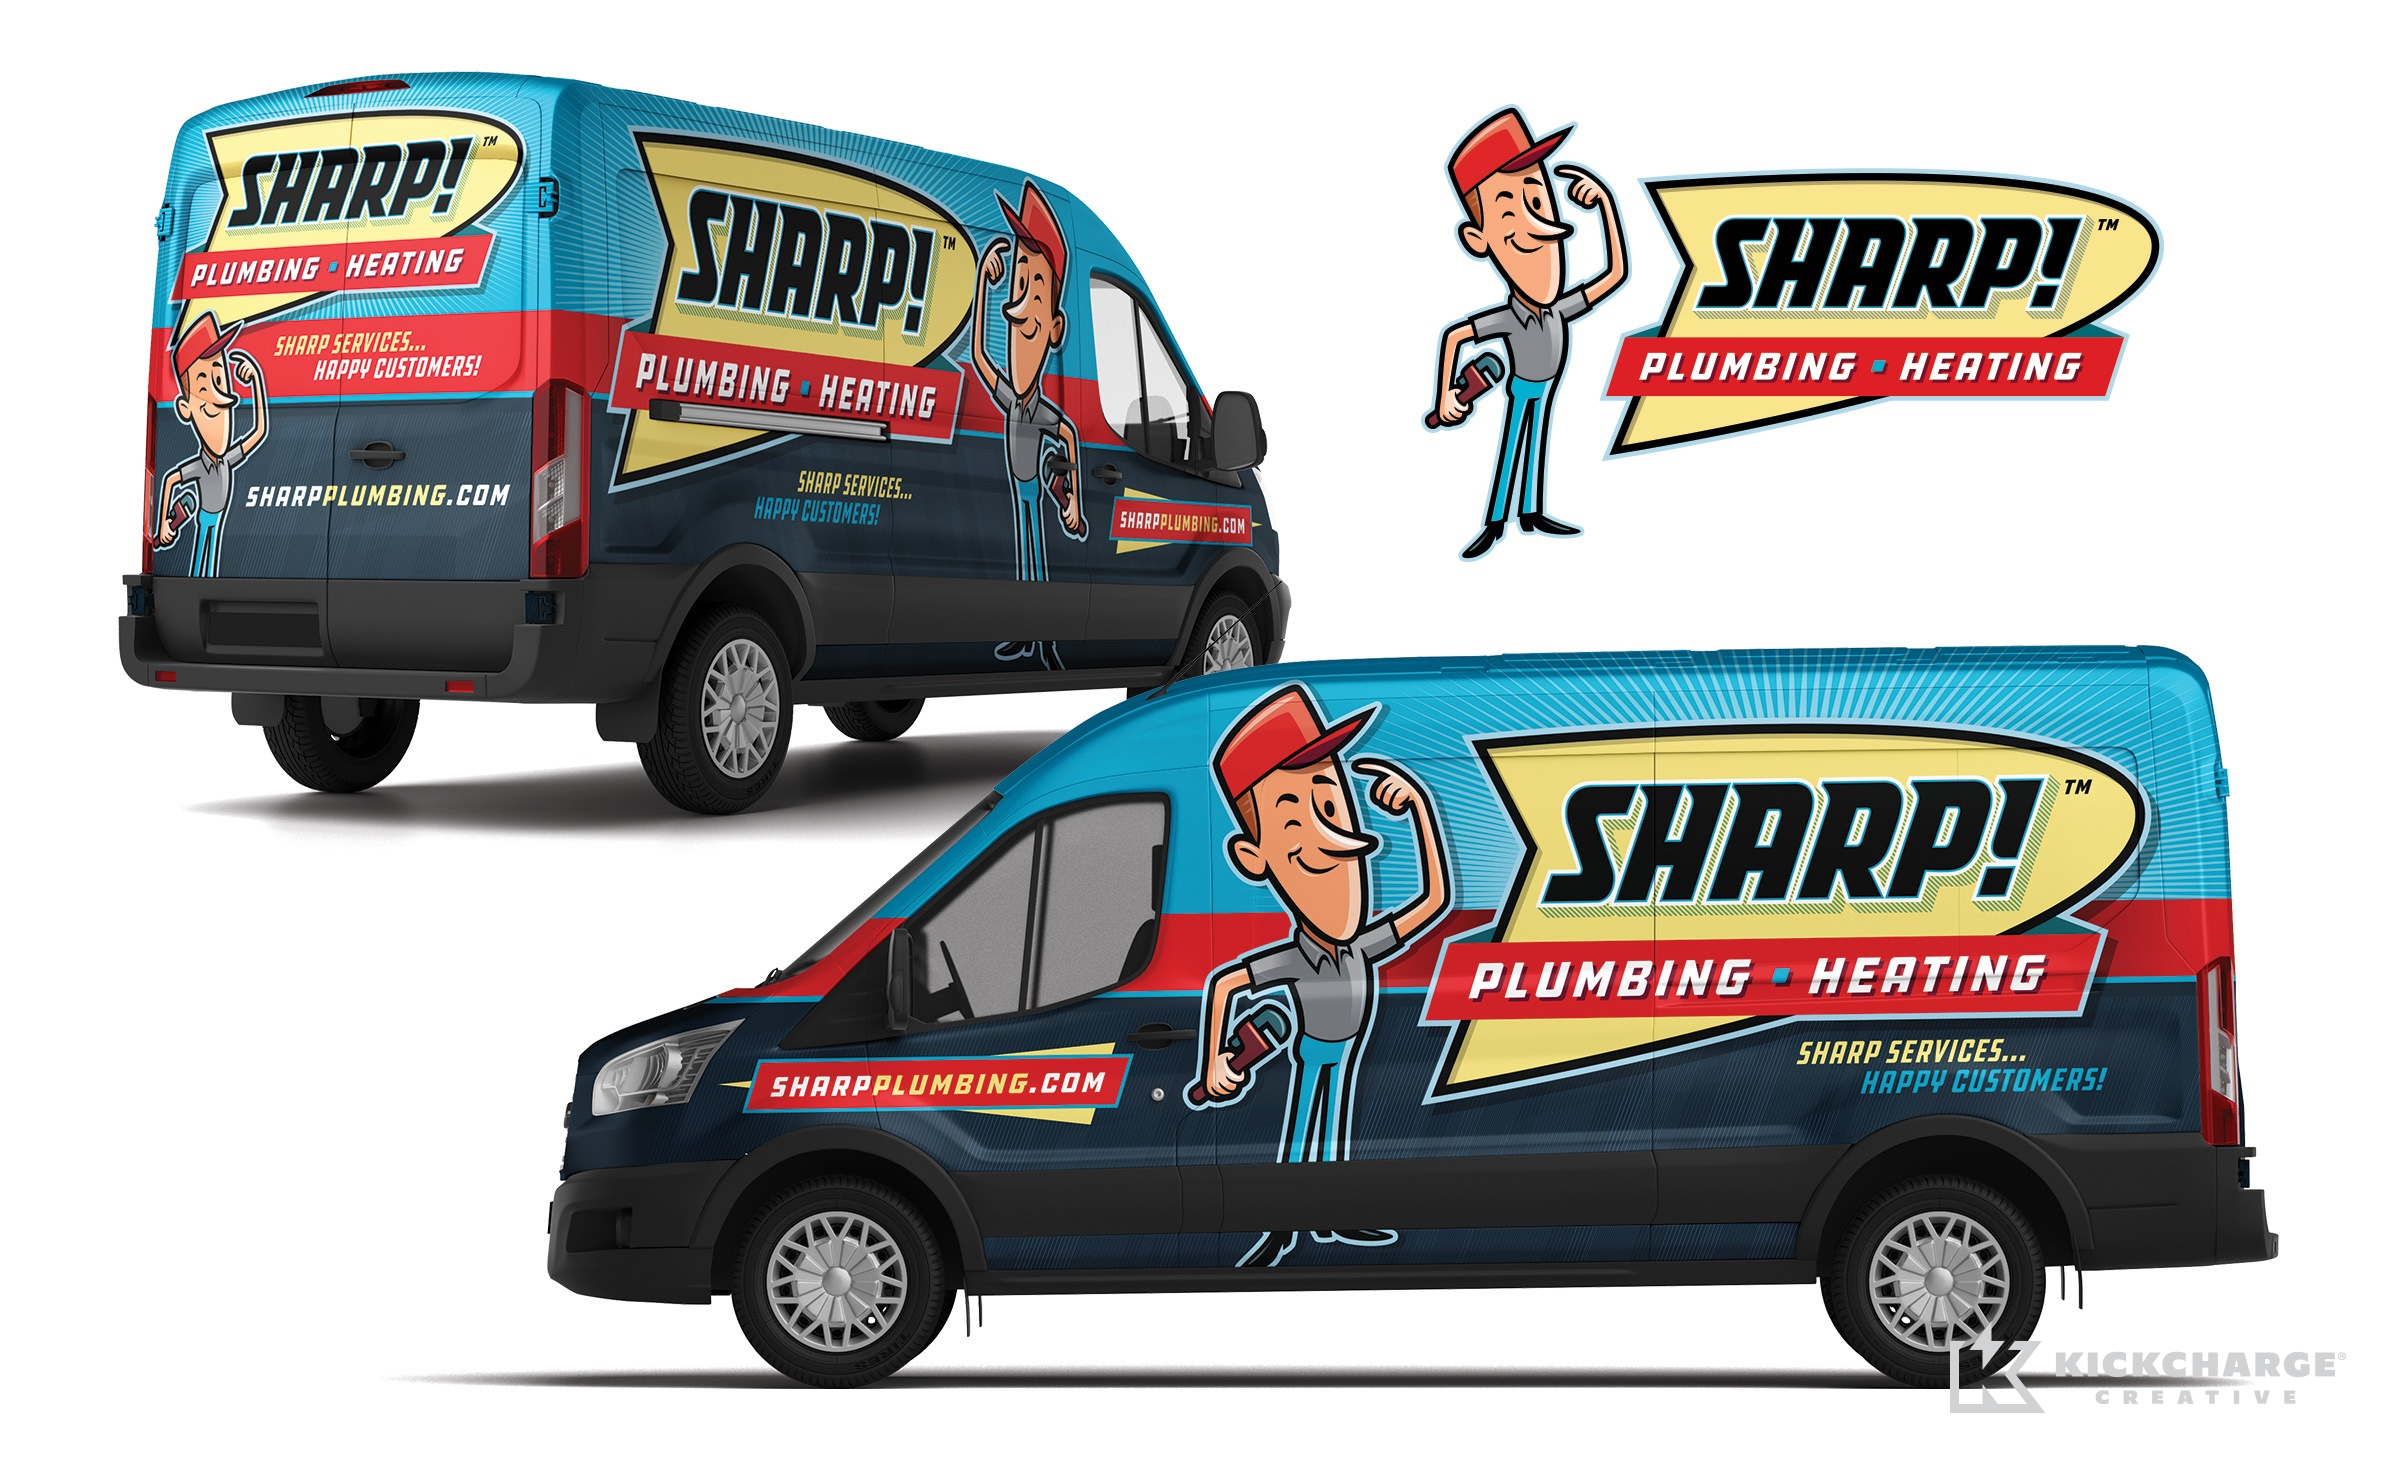 Sharp! Plumbing & Heating